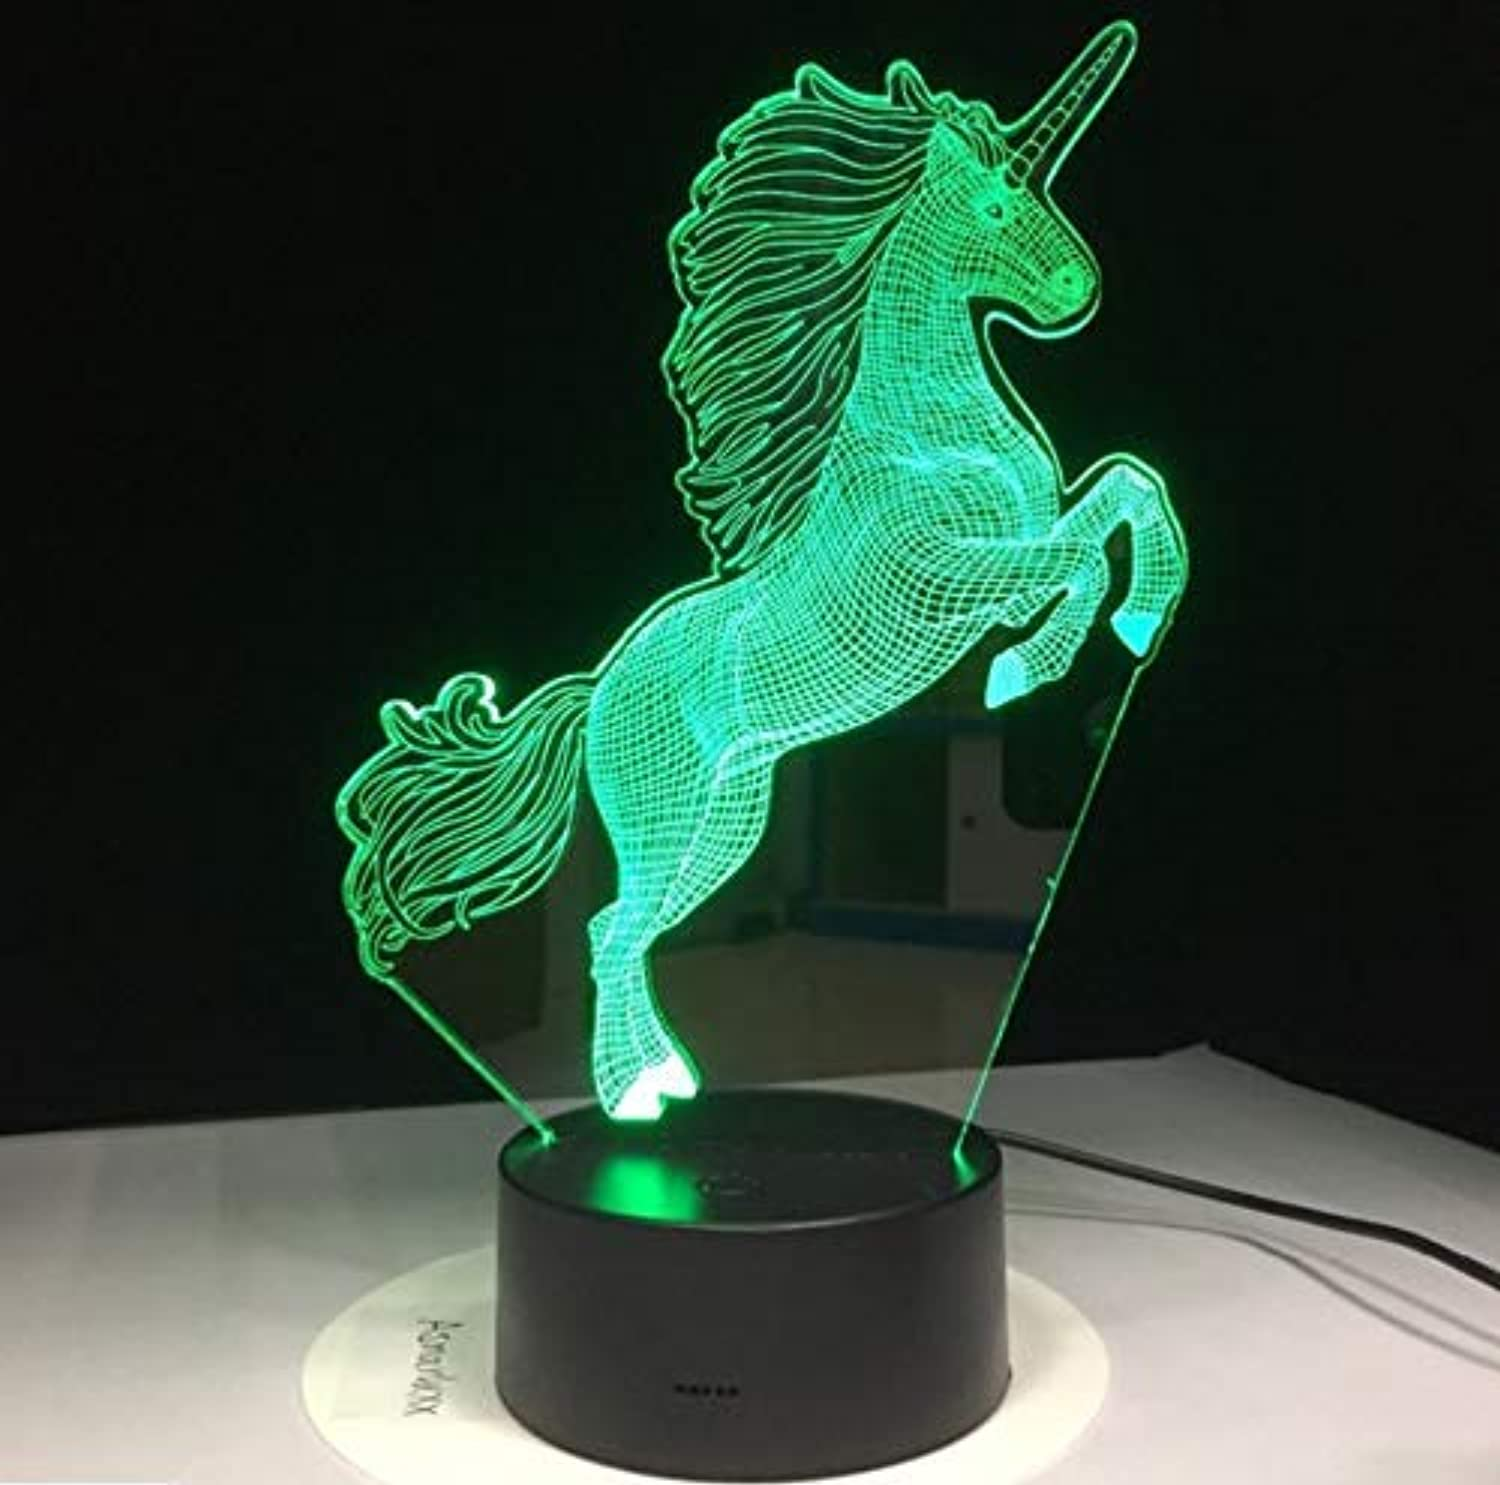 BMY Night Lights for Kids Unicorn Beside Lamp 7 colors Change with Remote Control Kids Night Light Optical Illusion As A Gift Ideas